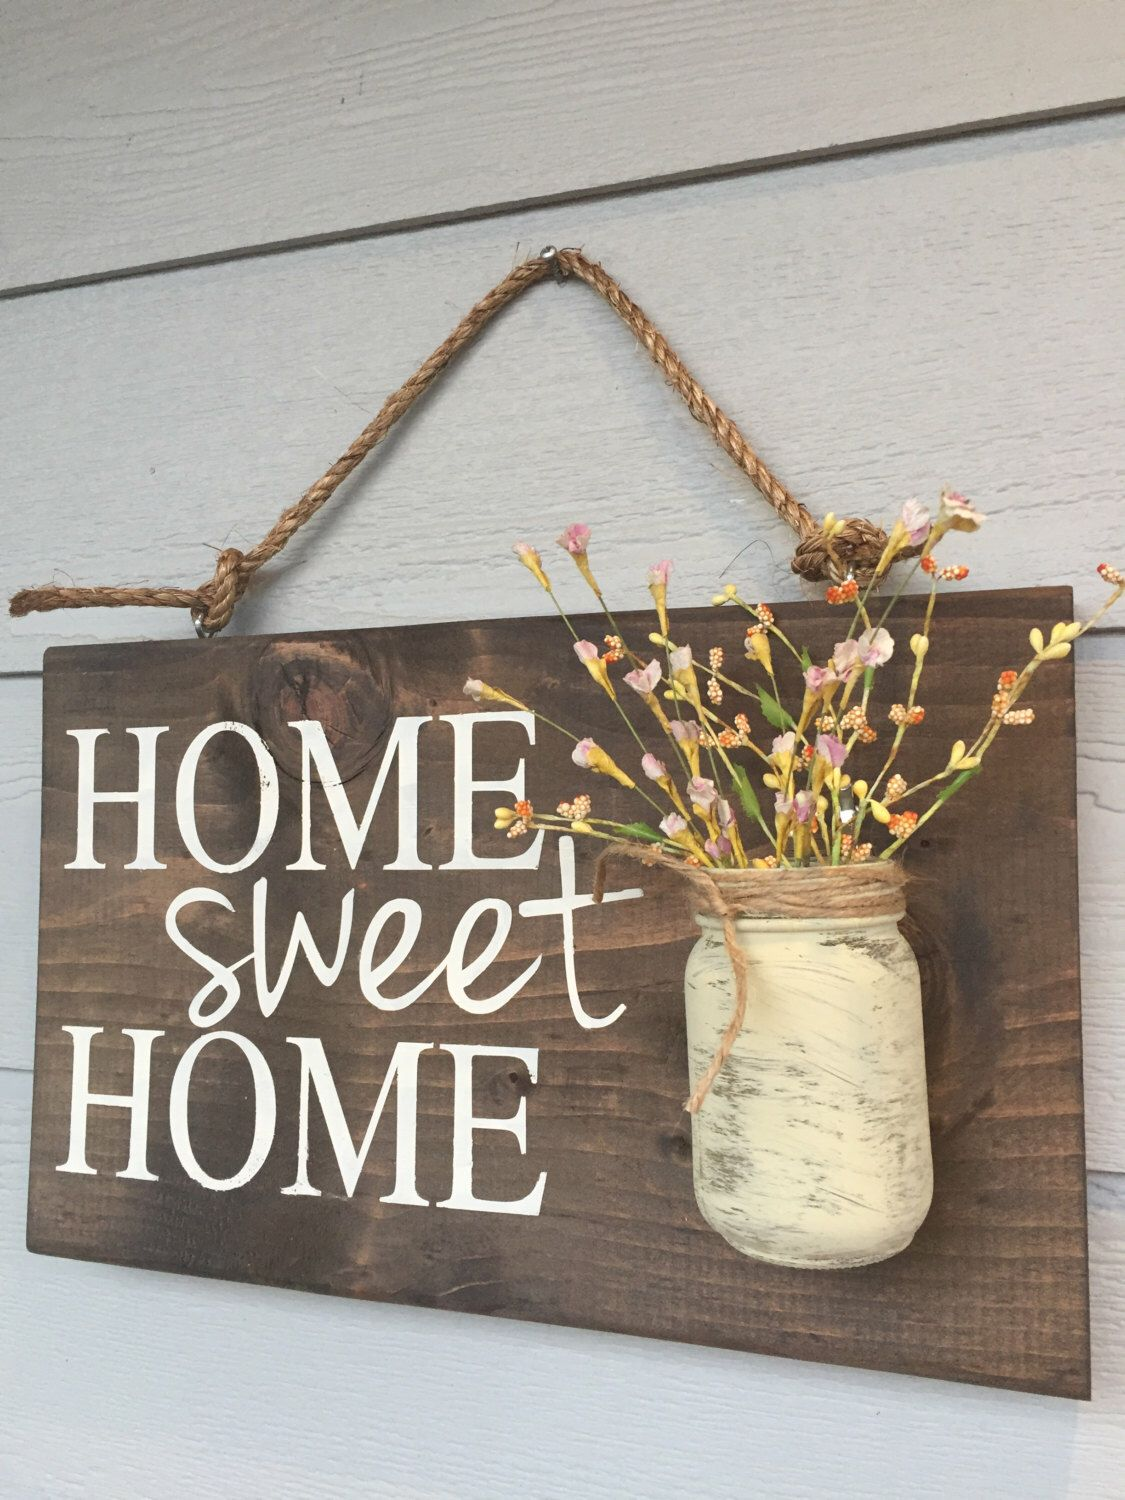 Exceptional Home Sweet Home Rustic Front Door Sign Decor, Mothers Day Gift, Outdoor  Signs For House U0026 Home, Front Porch Wood Sign Decoration, House Sign